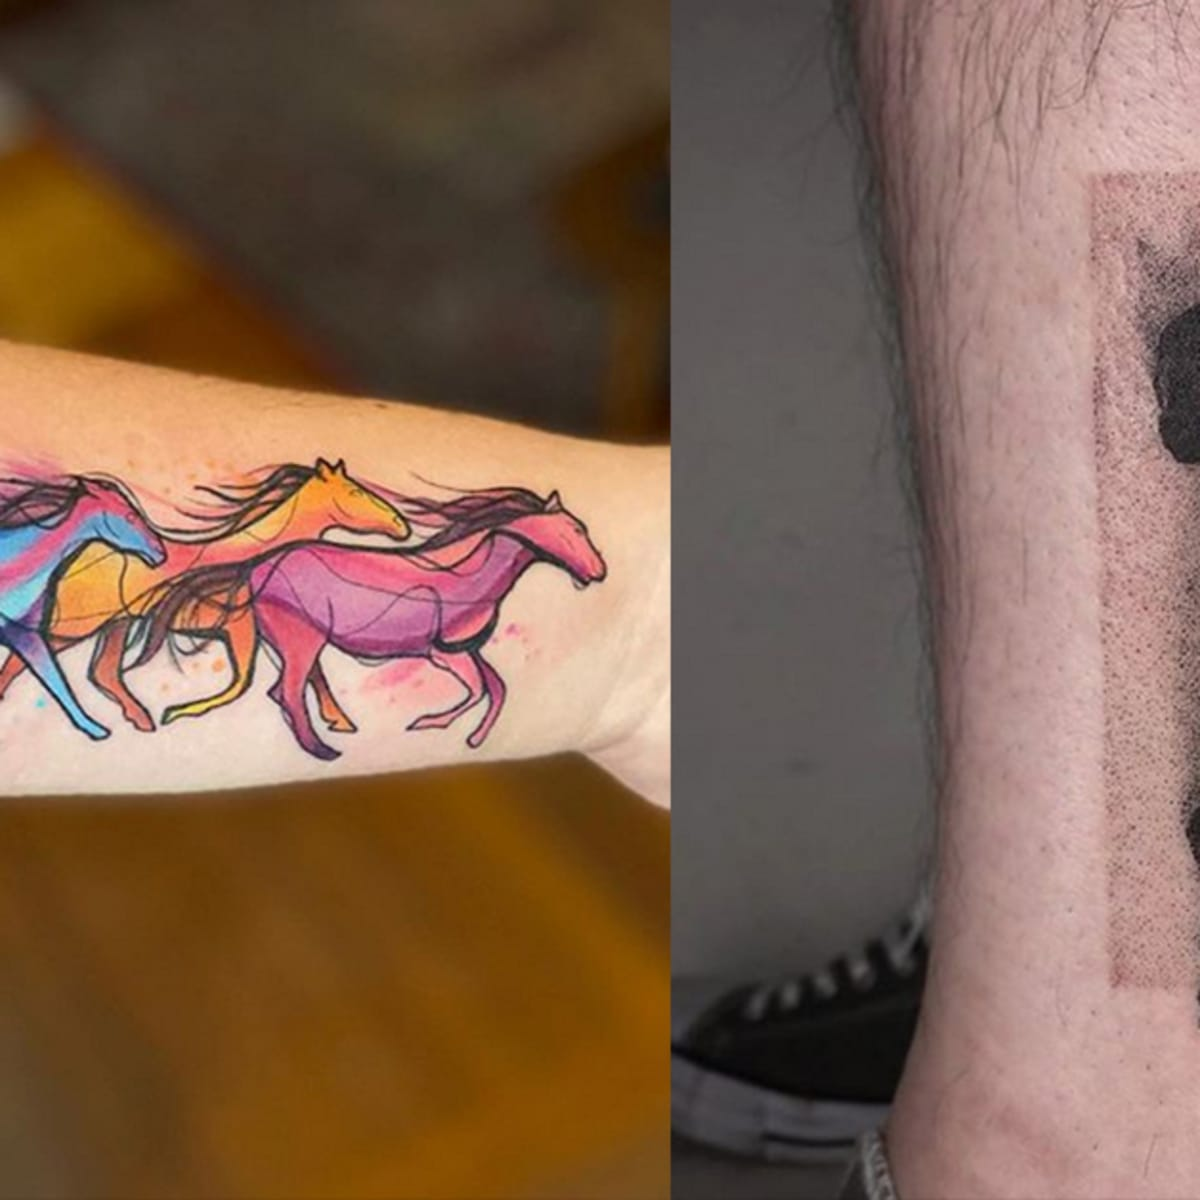 20 Beautiful And Badass Tattoos For National Horse Day Tattoo Ideas Artists And Models